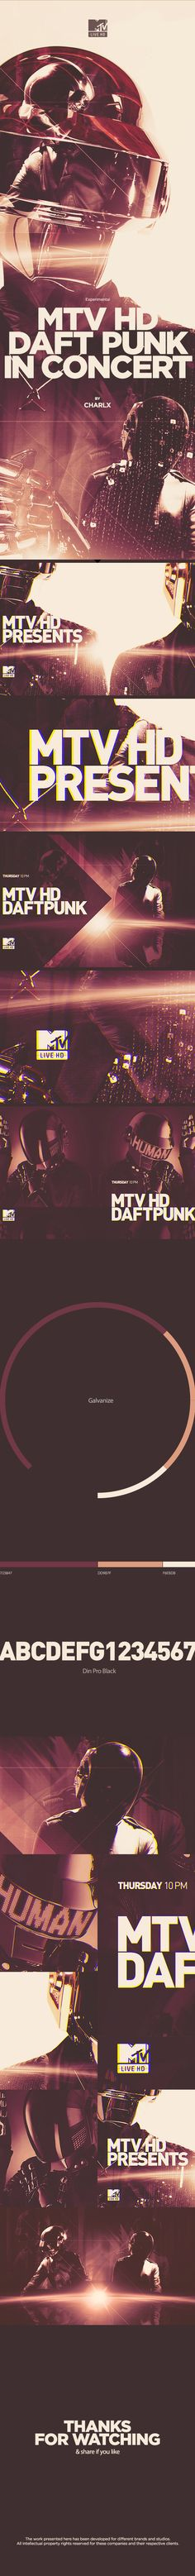 motion graphics/ storyboards/ styleframes | MTV HD | DAFT PUNK